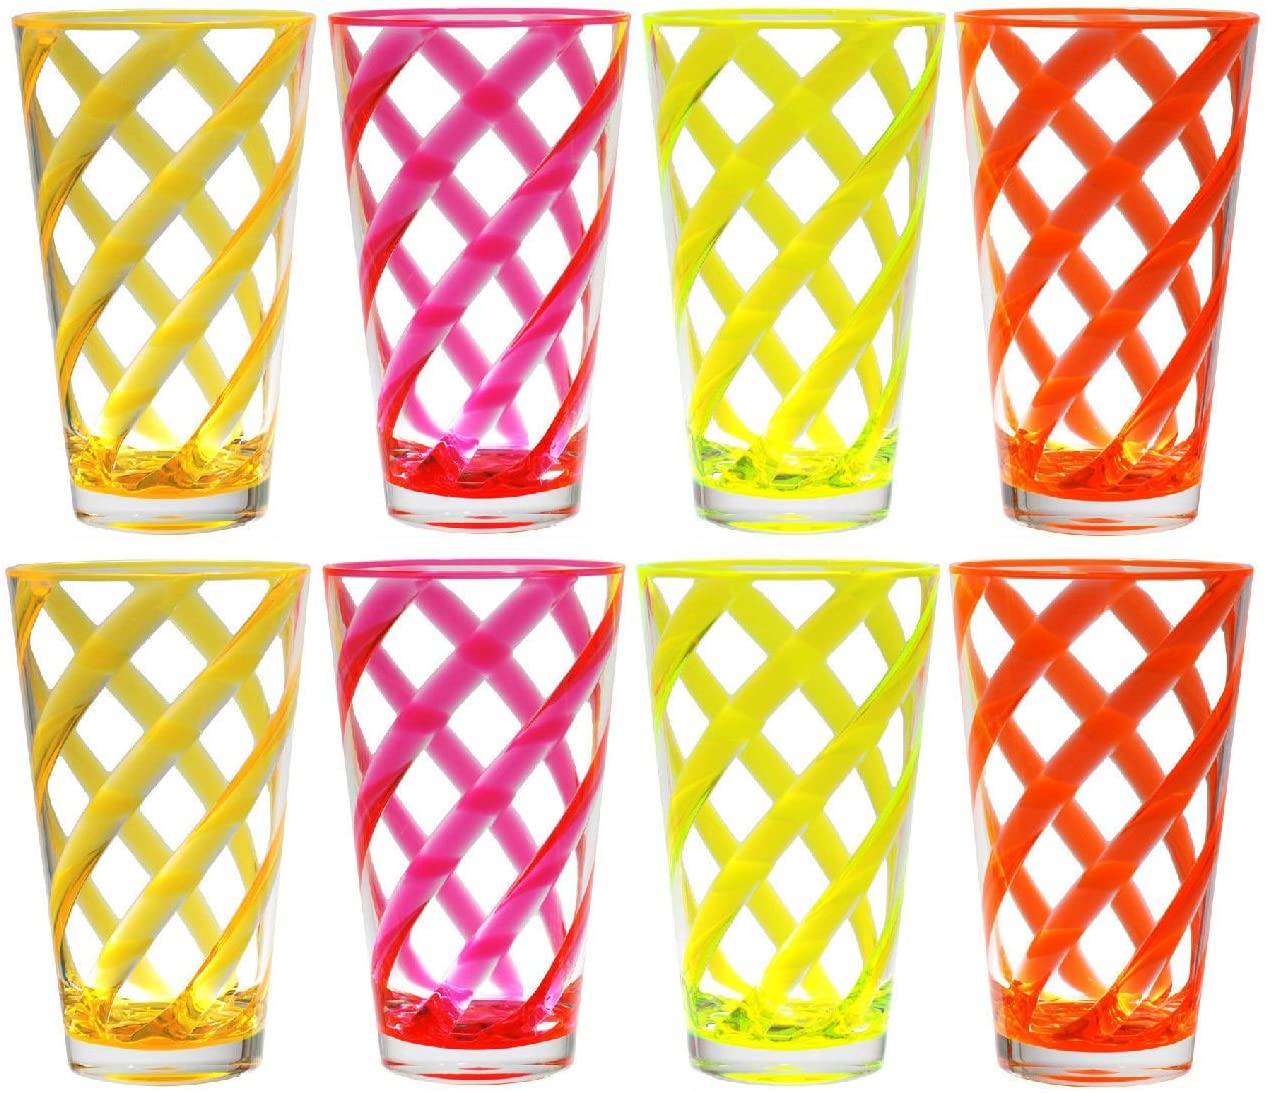 QG Set of 8 Acrylic 22-Ounce Iced Tea Cup Neon Color Twist Stripes w/Clear Heavy Base Plastic Tumbler Set in 4 Assorted Colors